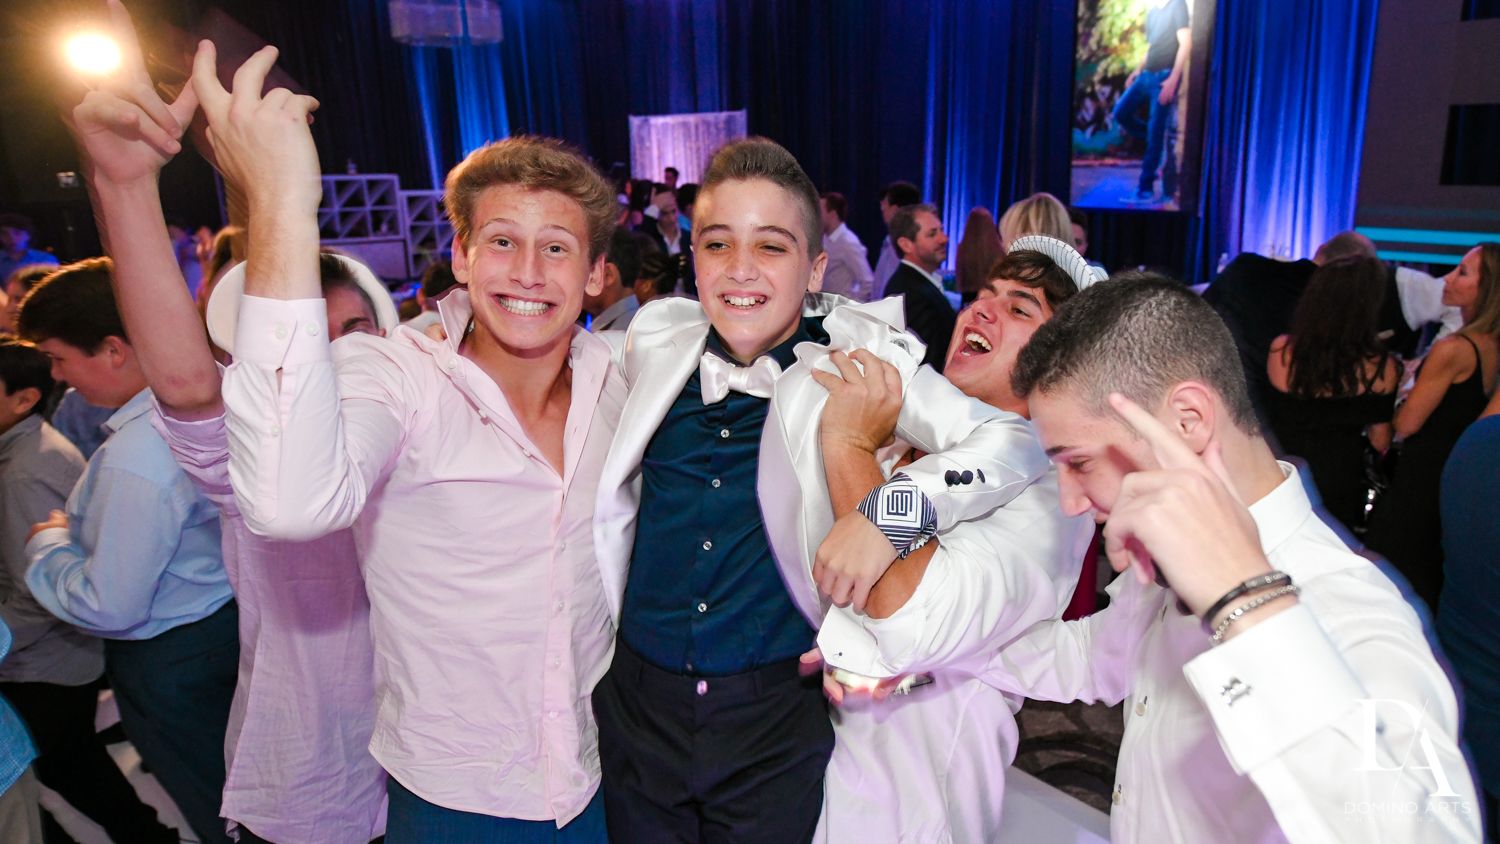 fun photos at Luxury B'Nai Mitzvah at Woodfield Country Club by Domino Arts Photography